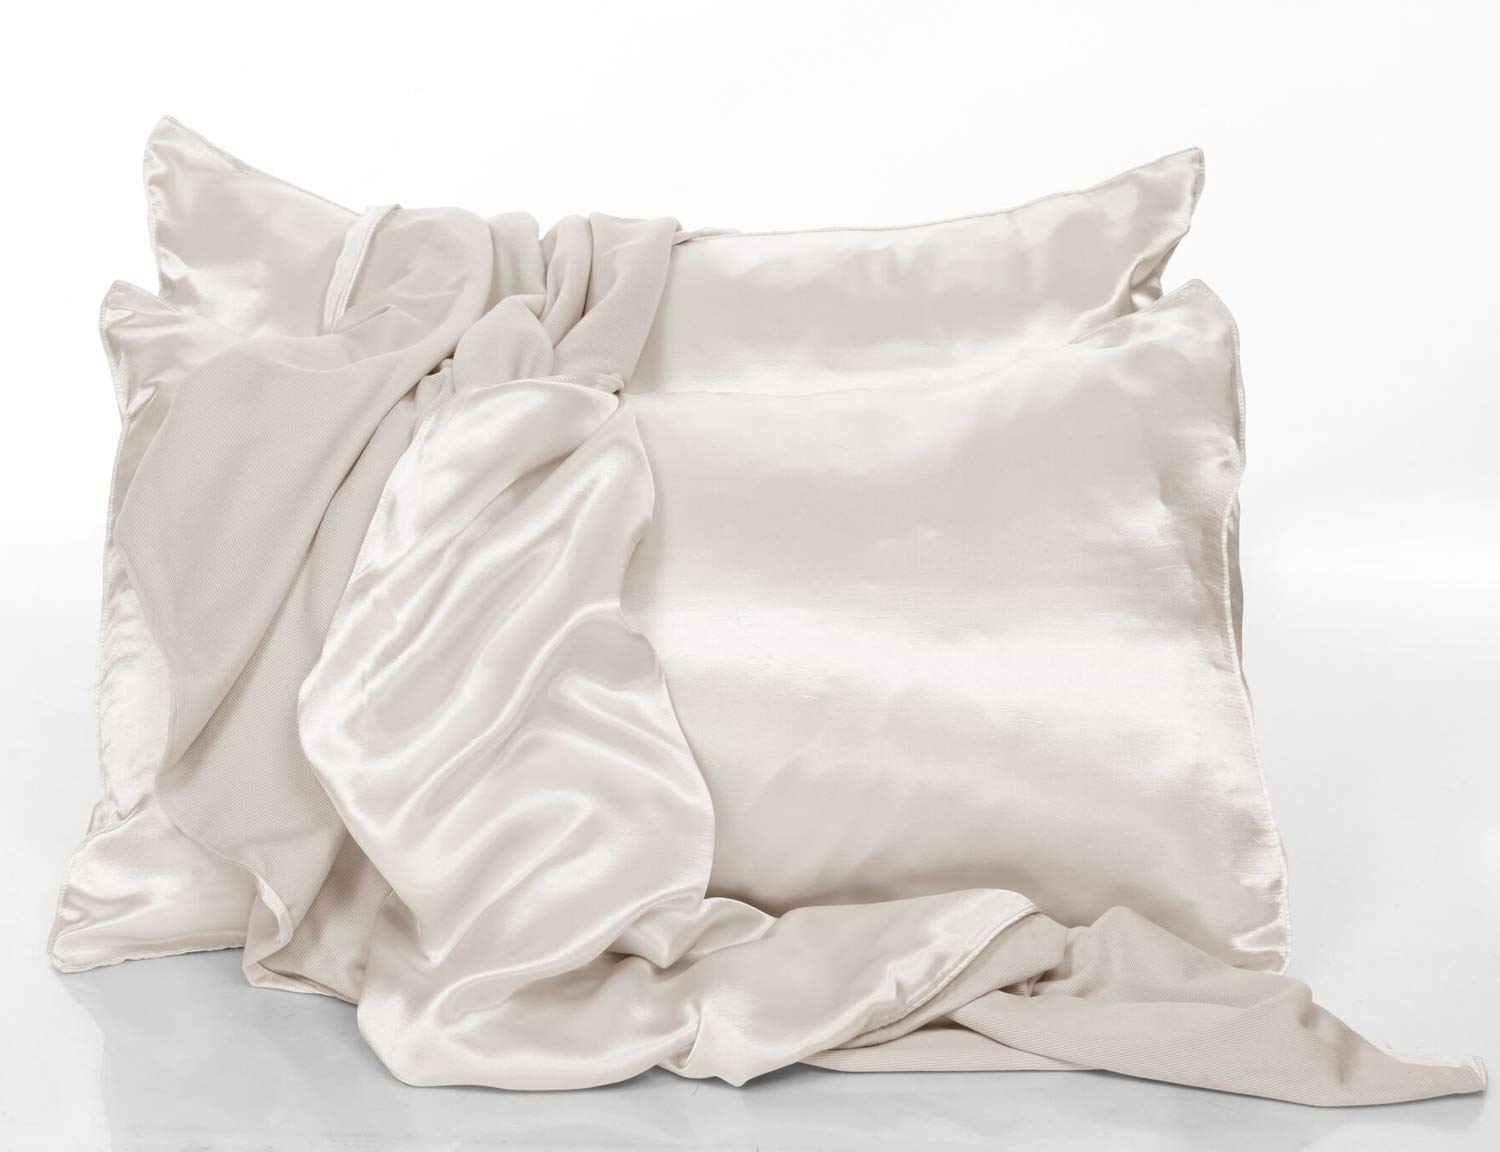 PJ Harlow Eggnog Satin King Pillowcases - Set of 2